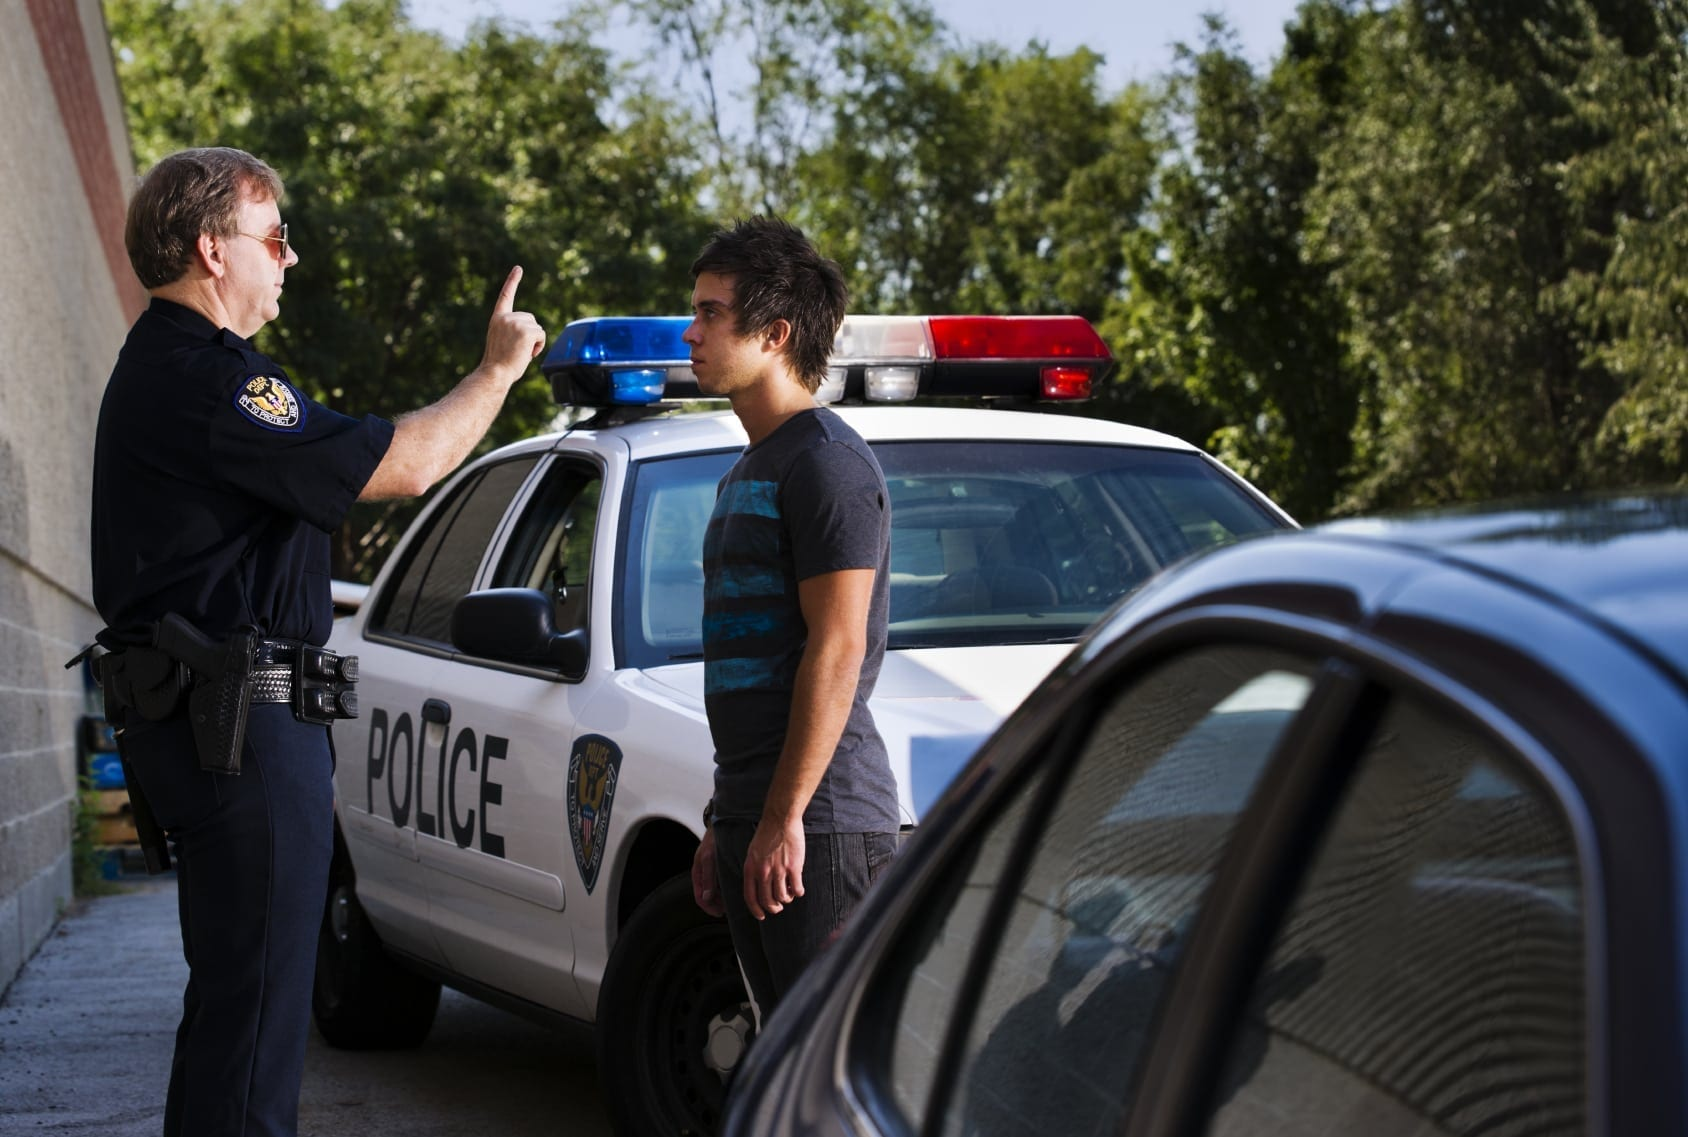 Police Officer DUI Test Stock Photo